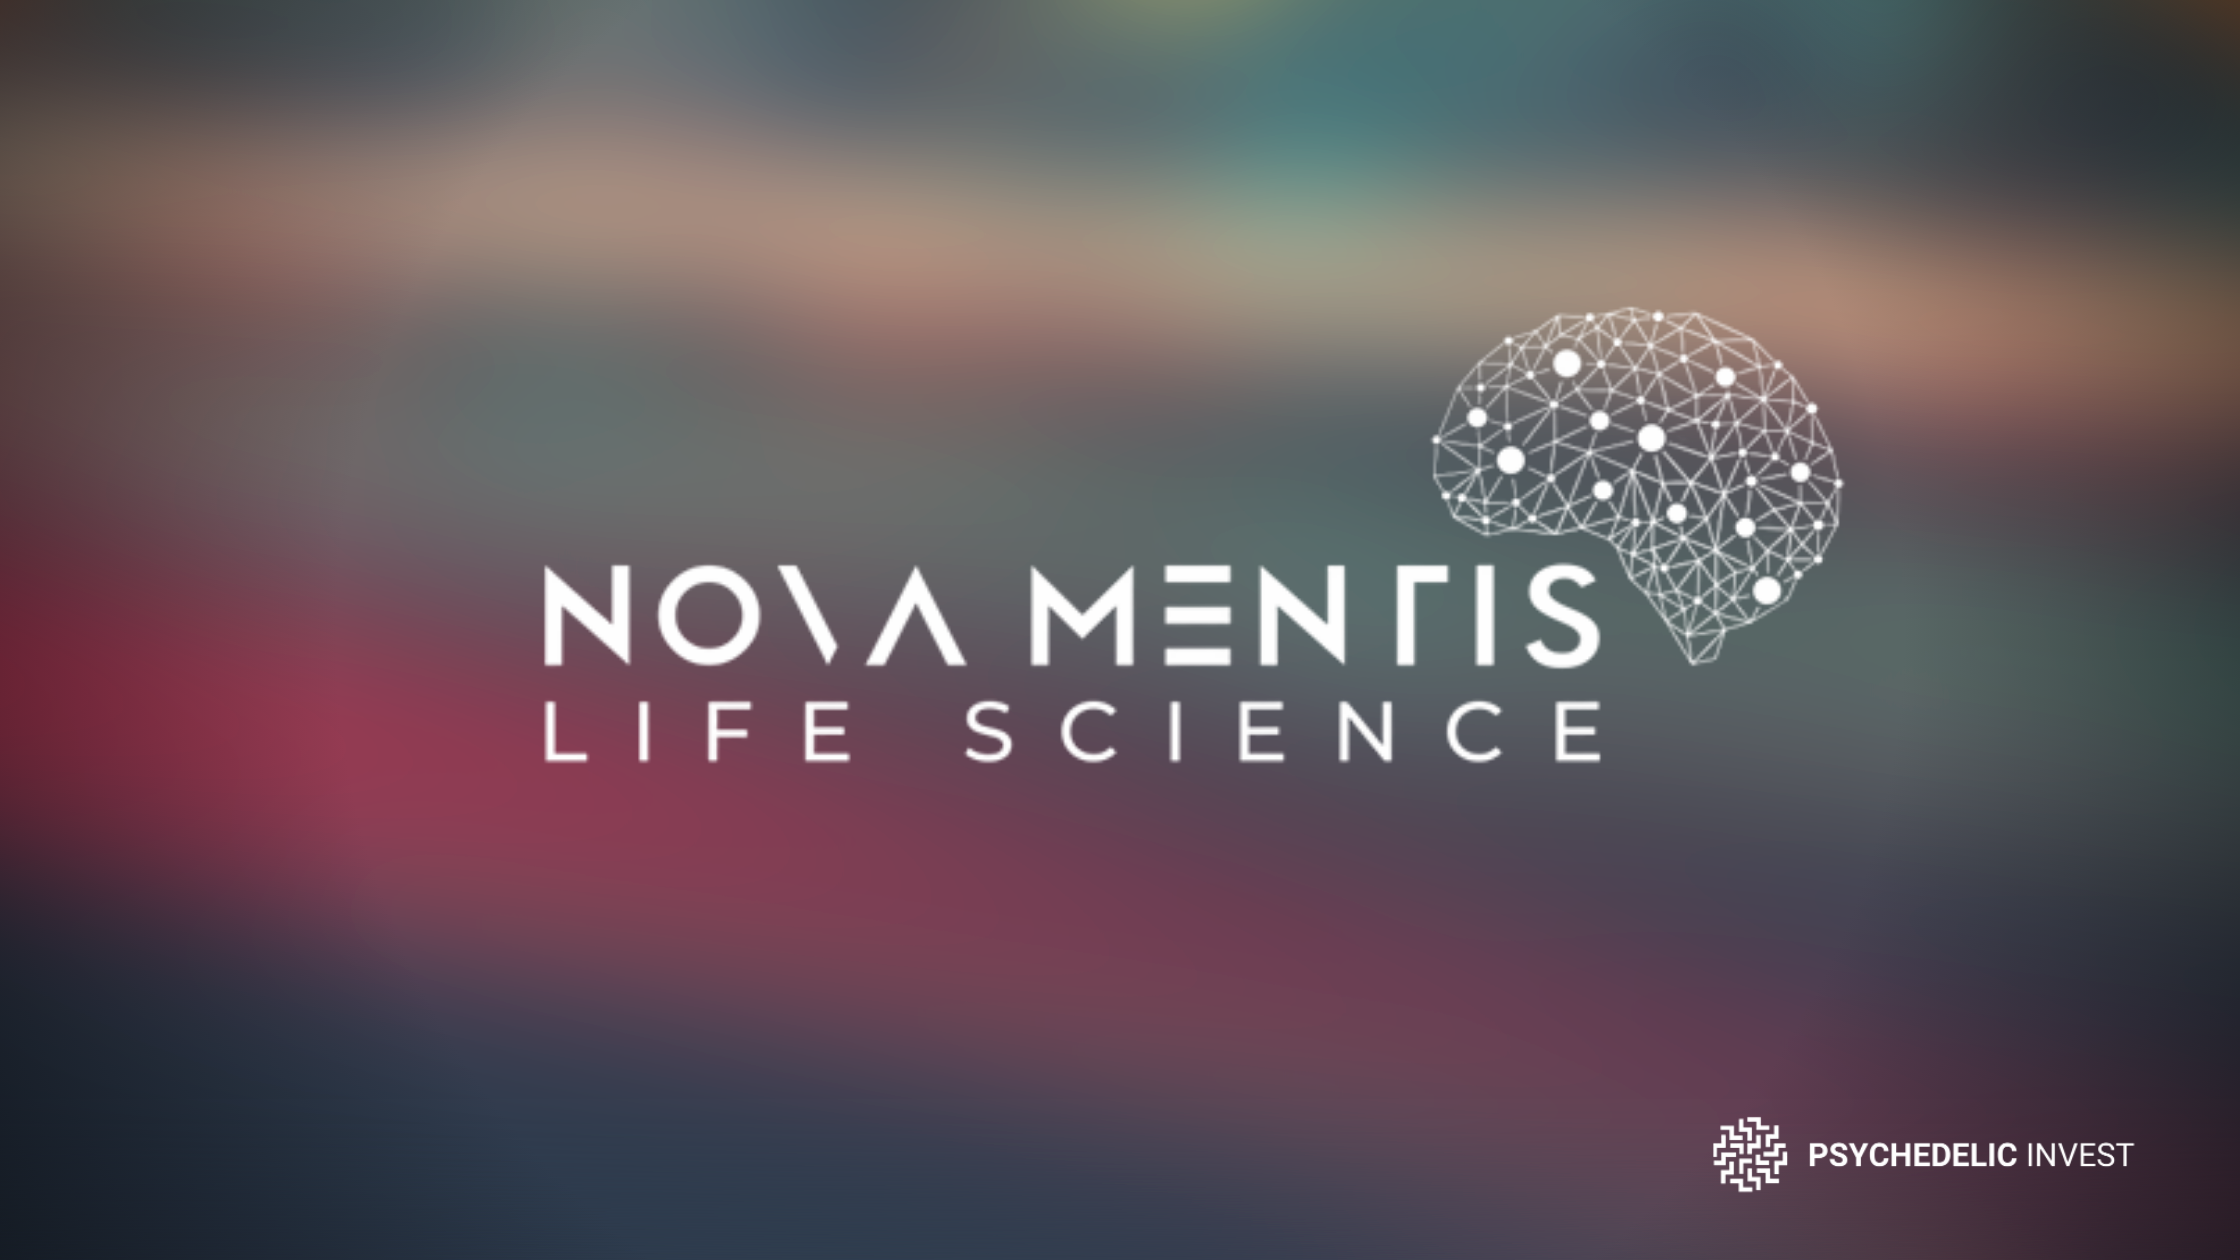 Nova Mentis Life Sciences